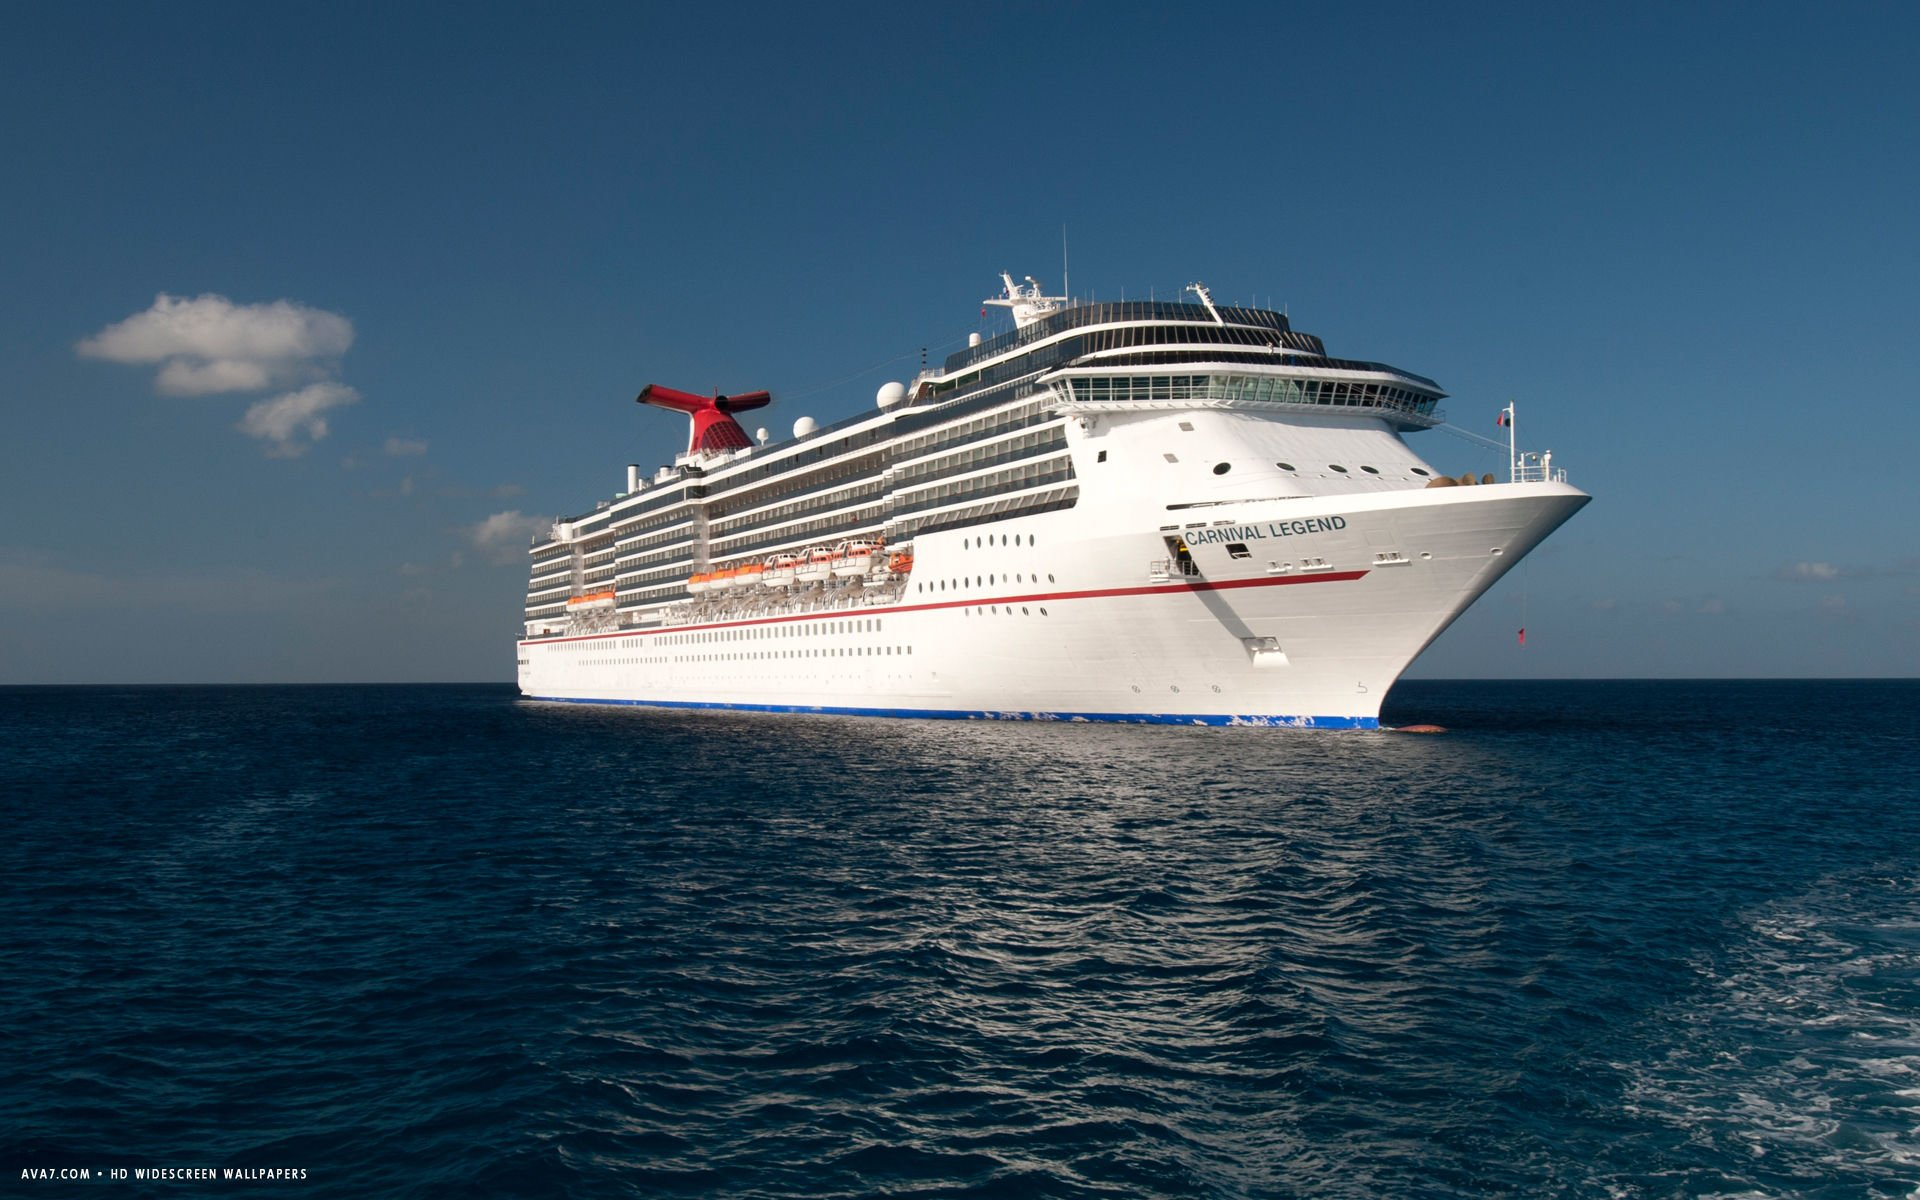 carnival legend cruise ship hd widescreen wallpaper cruise ships 1920x1200